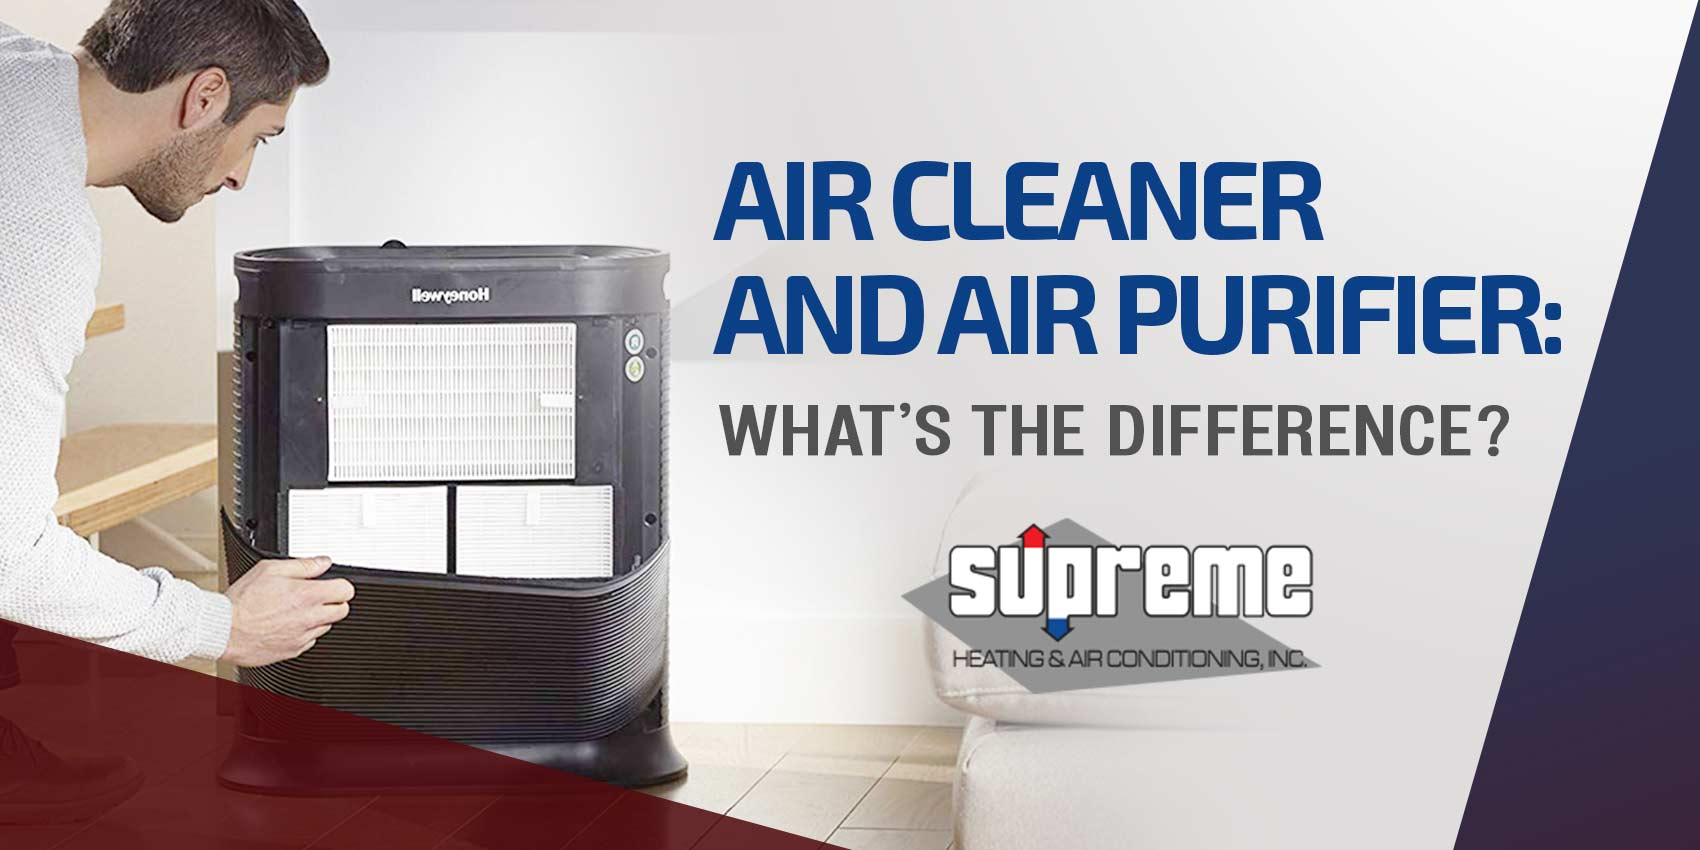 Air Cleaner and Air Purifier: What's The Difference?